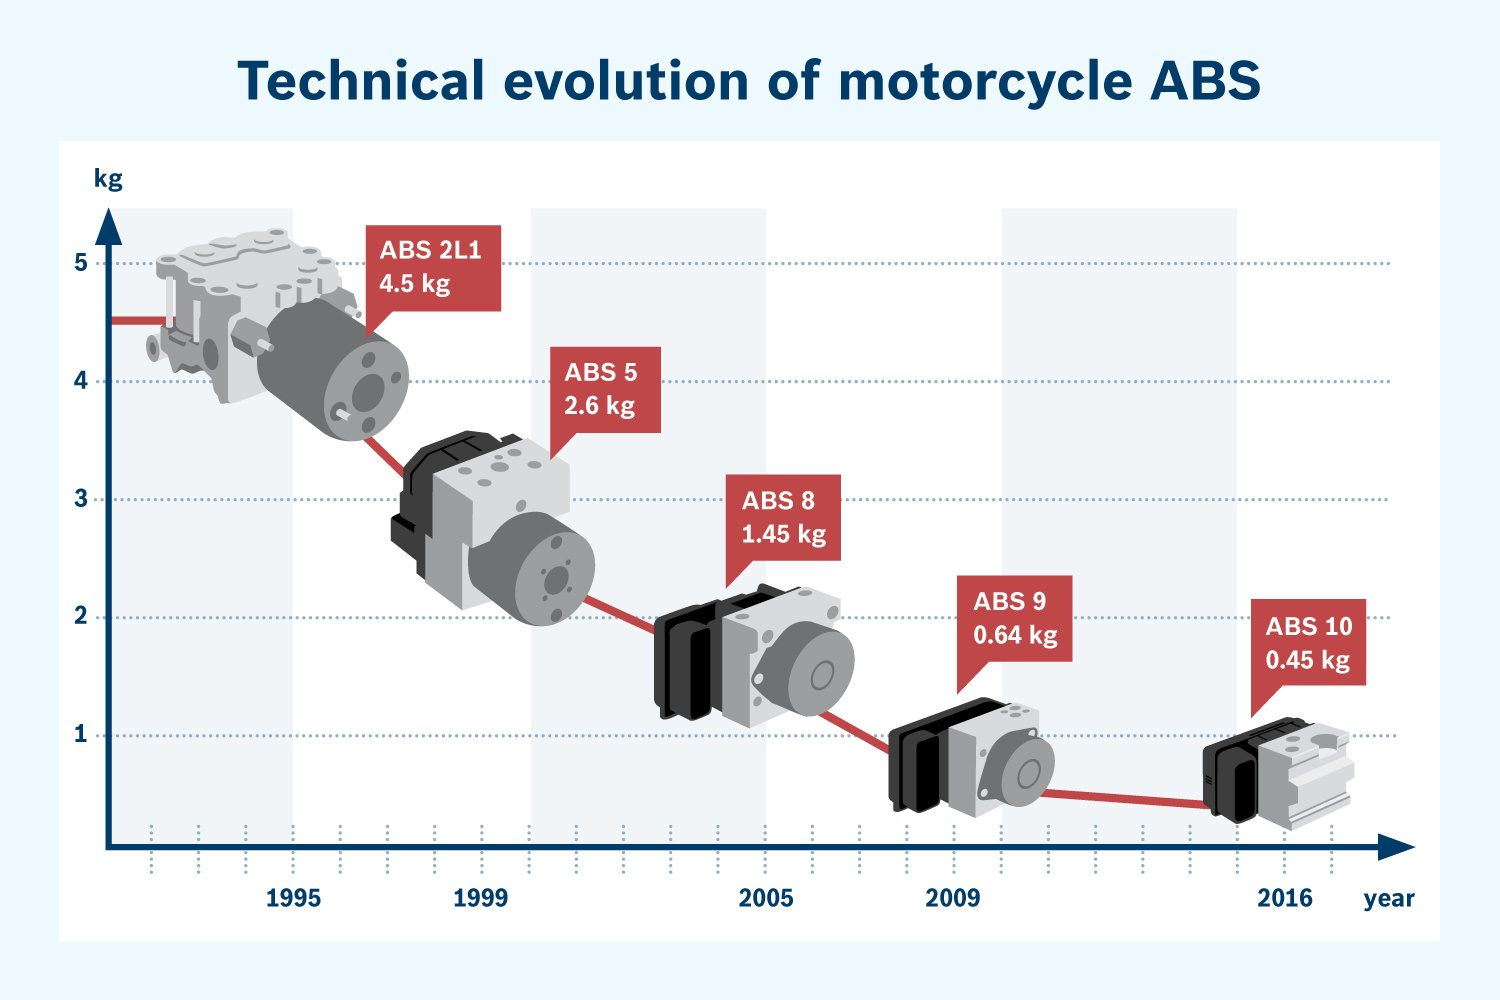 Technical evolution of motorcycle ABS